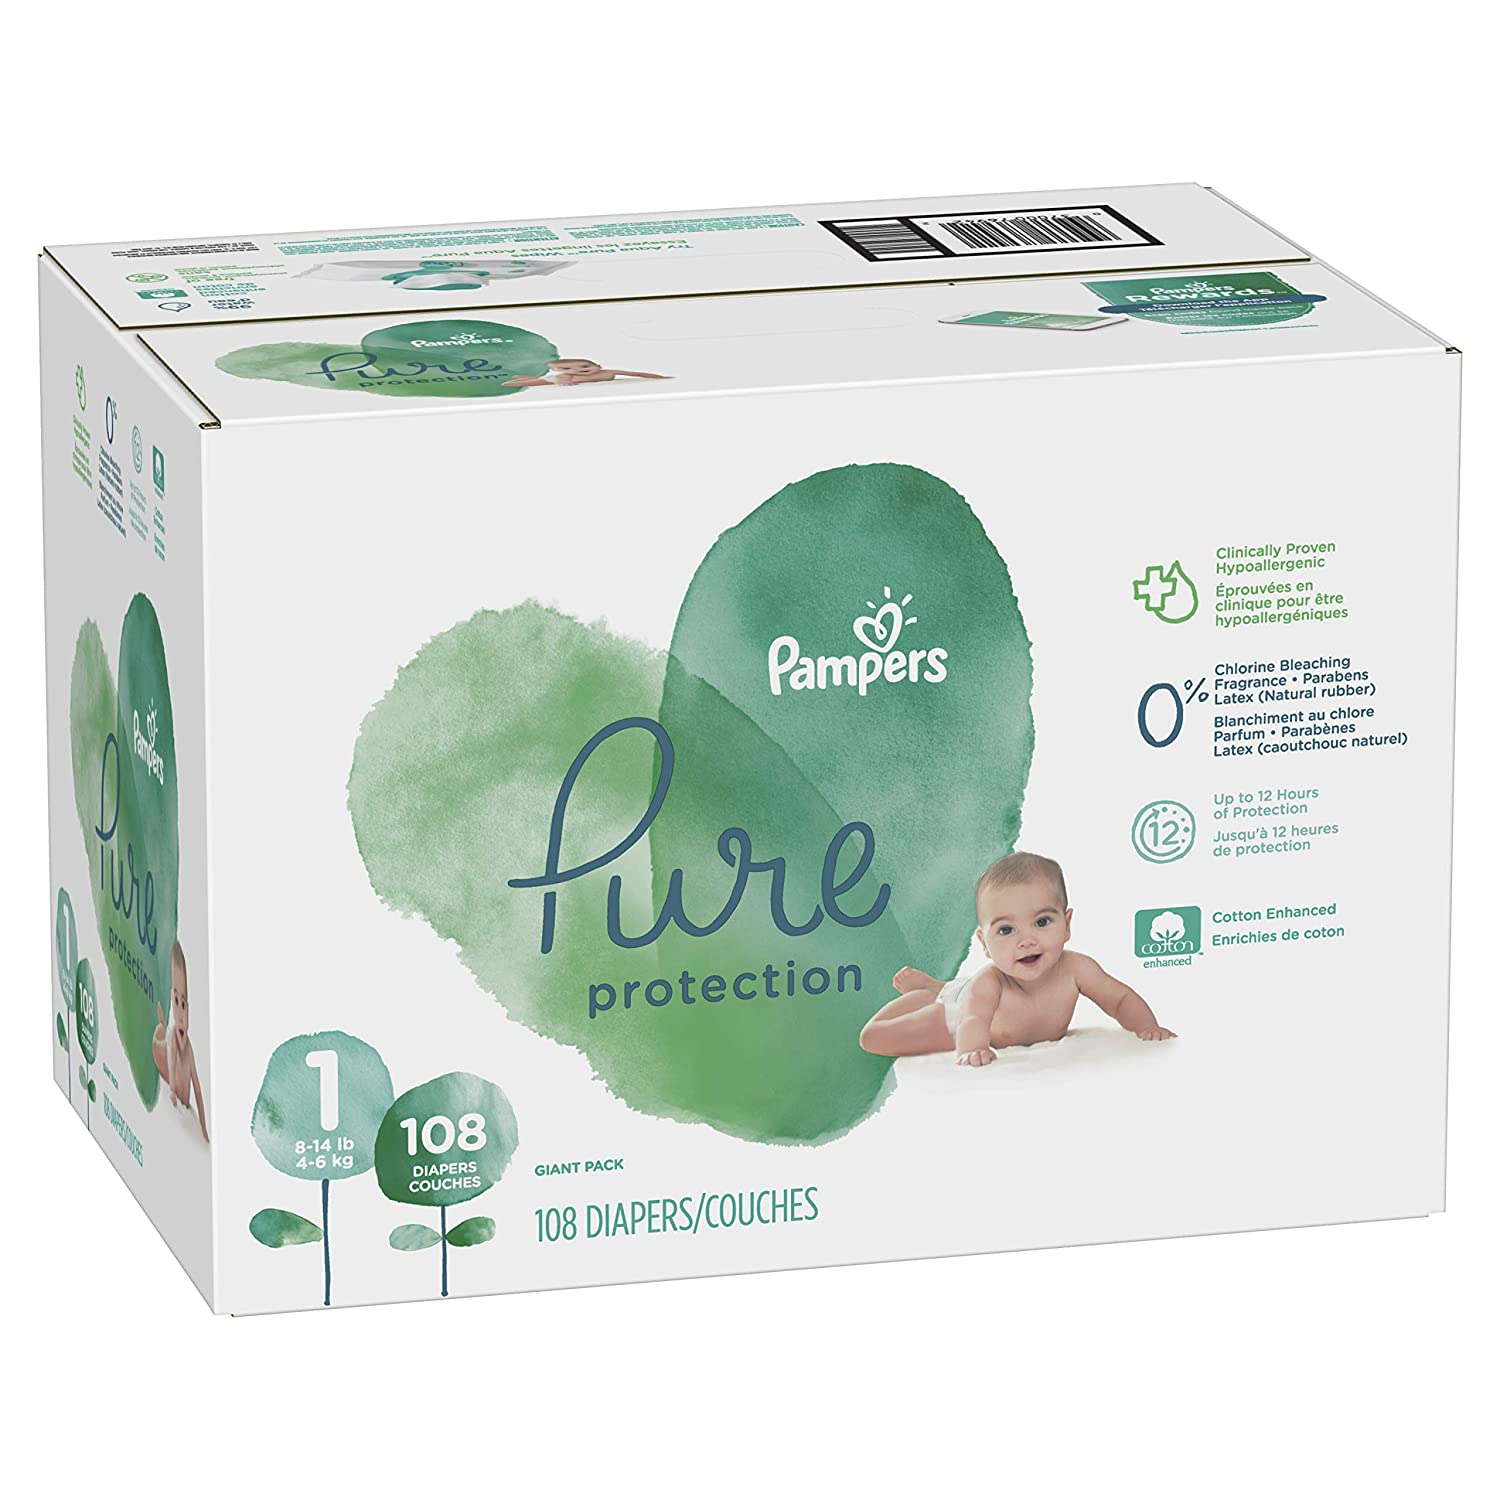 Pampers Pure Disposable Baby Diapers, Hypoallergenic and Fragrance Free Protection, Size 2, 104 Count, Giant